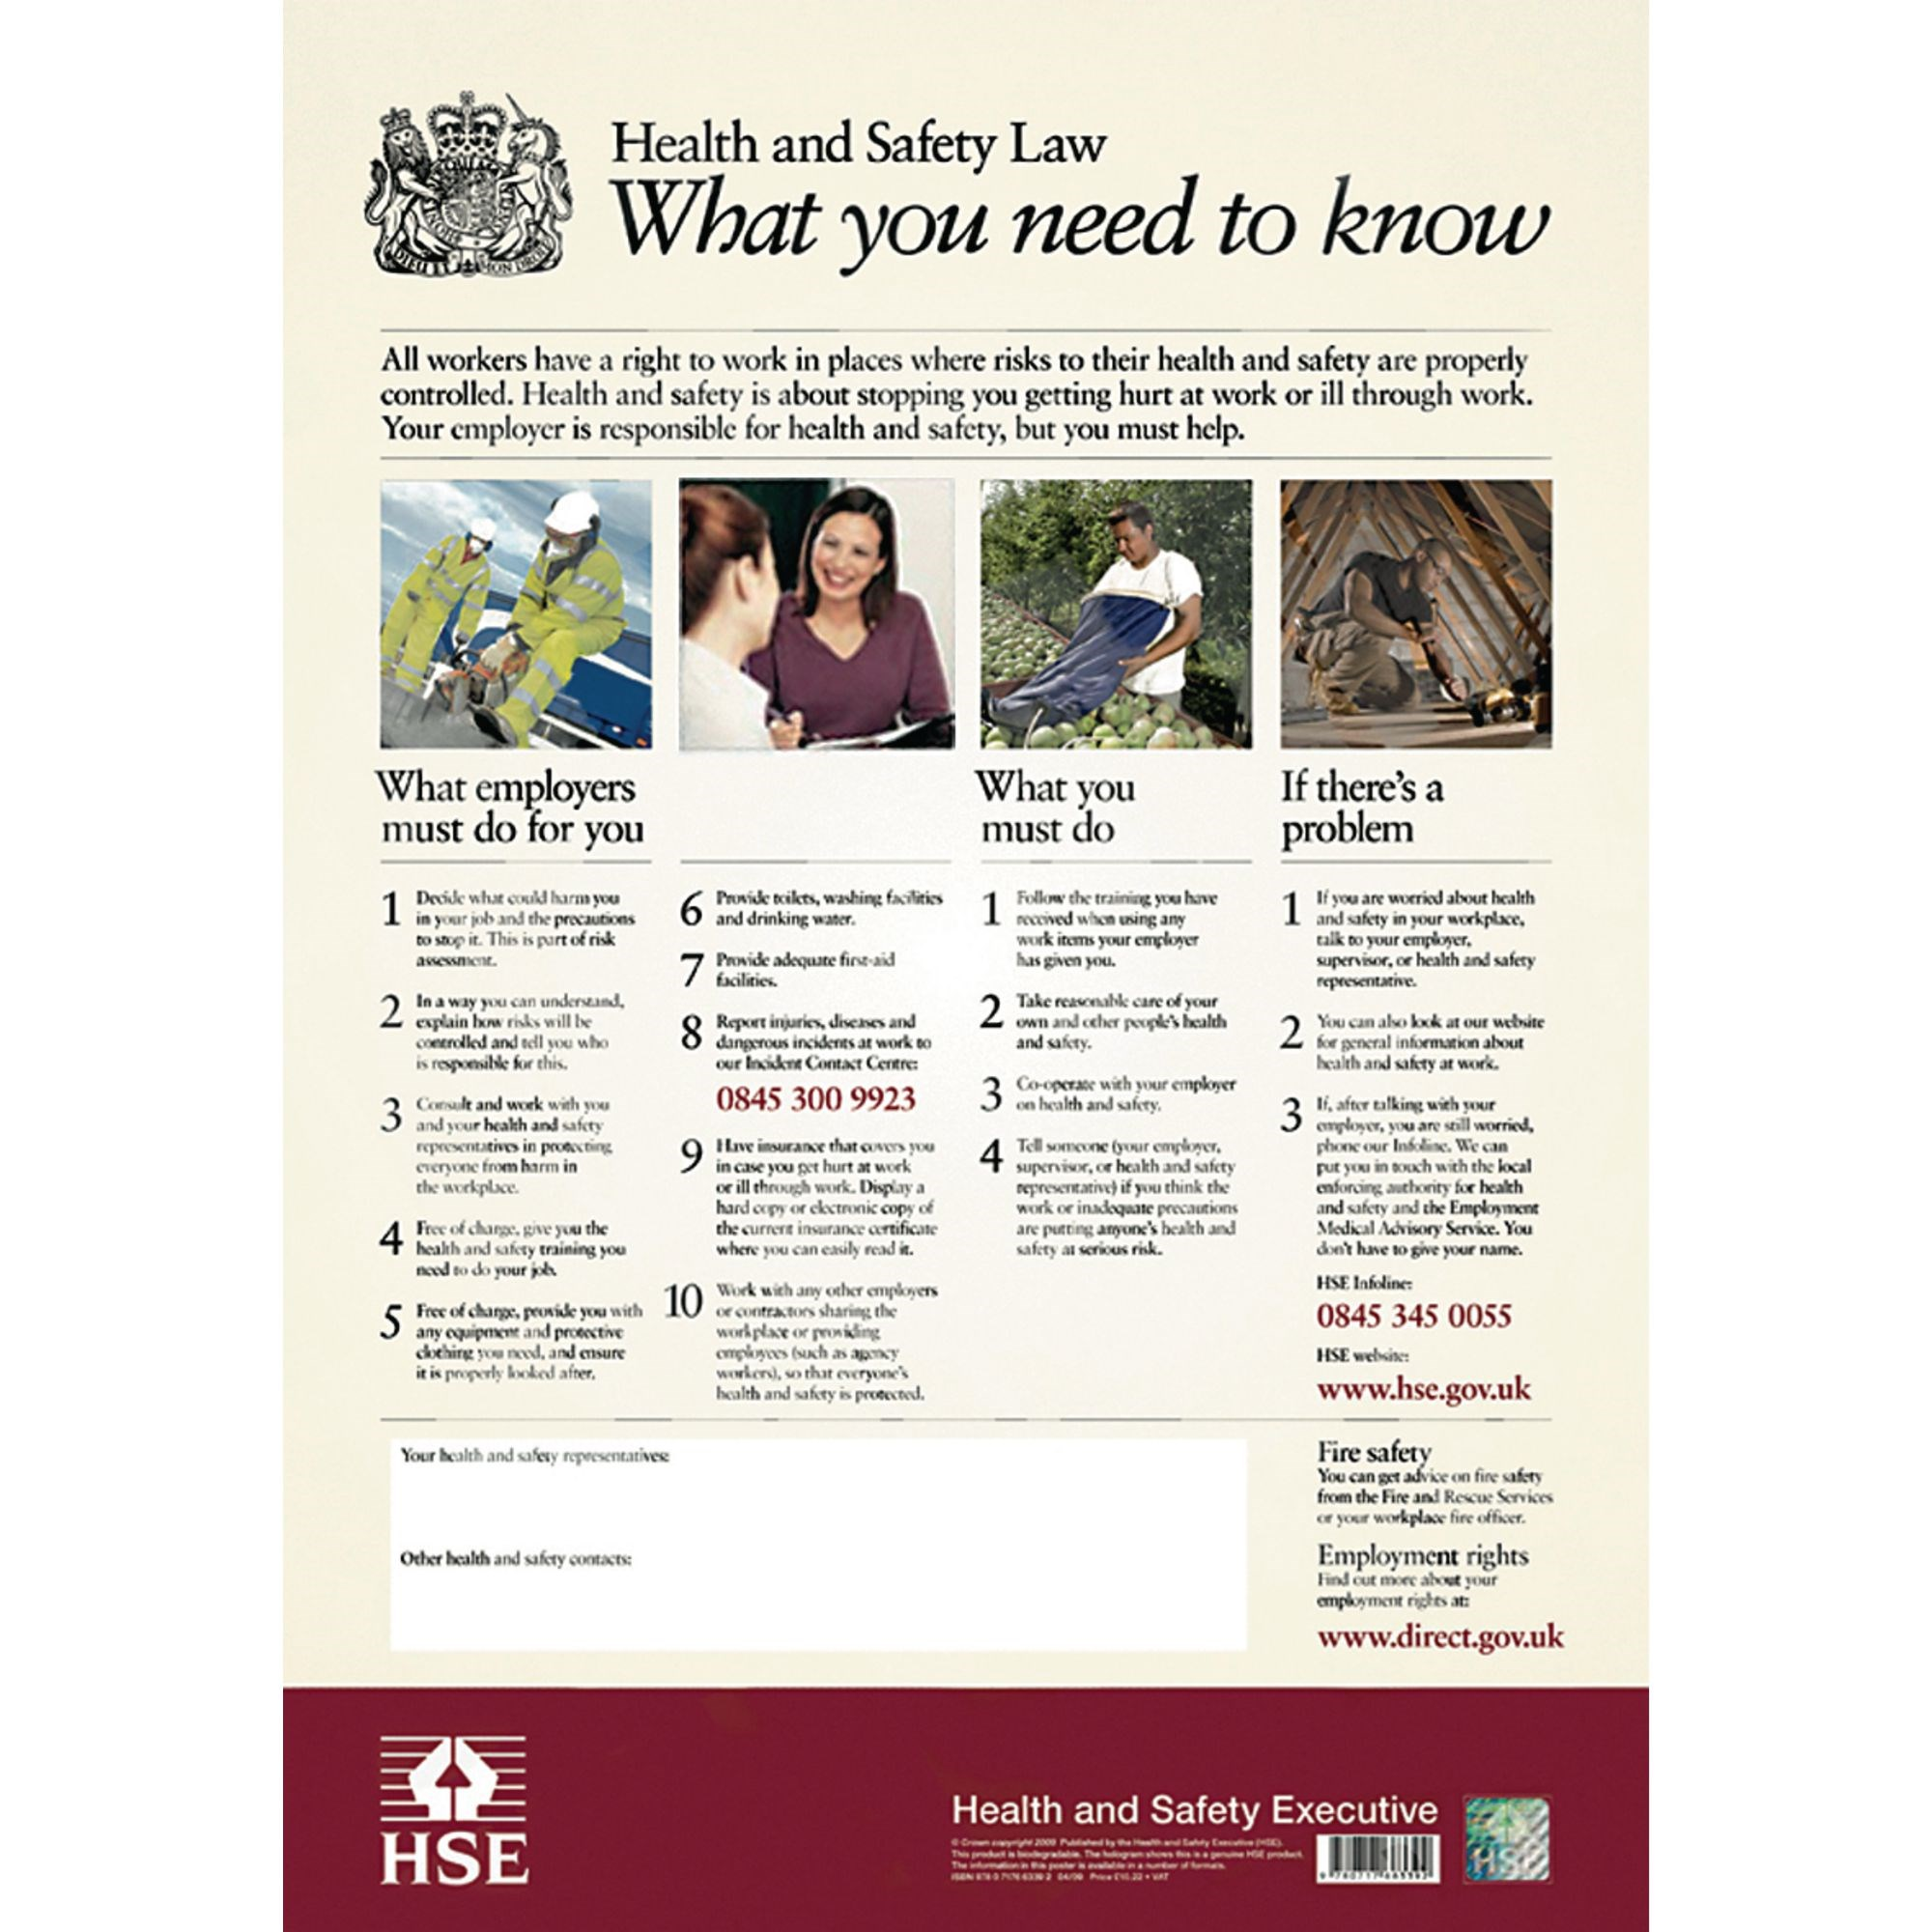 Health and Safety Law Poster 595 x 415mm PVC